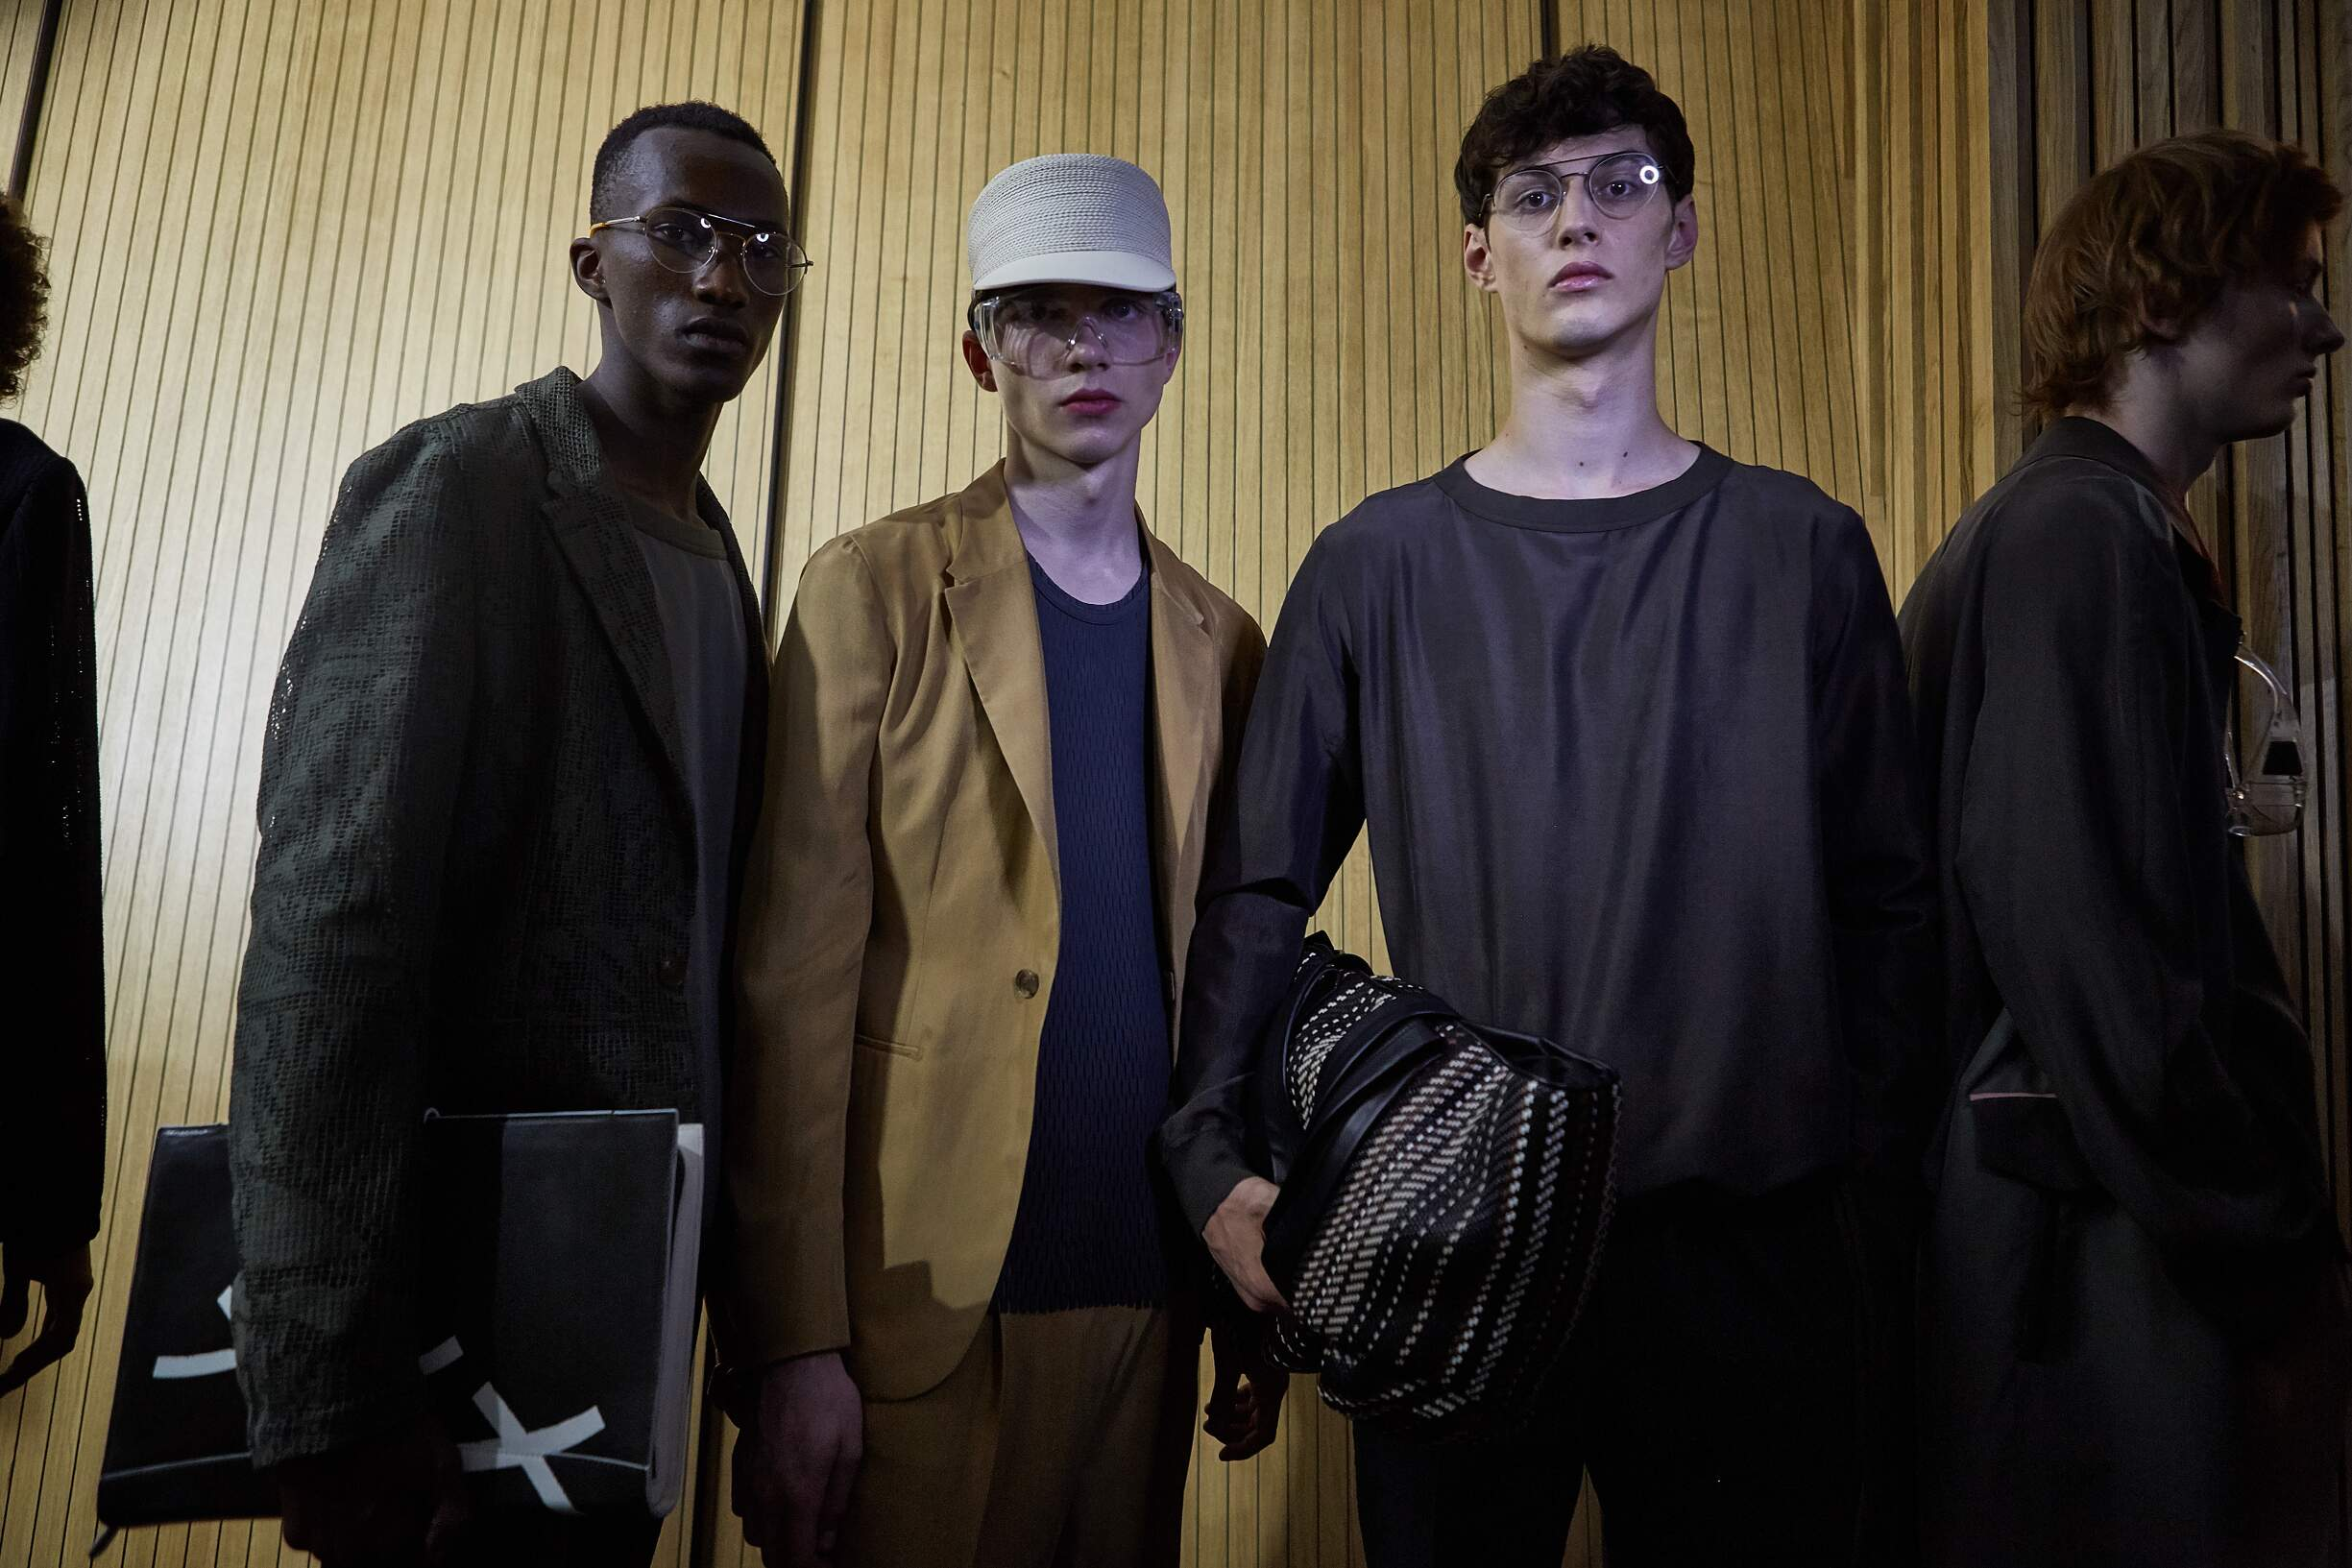 Models Spring Summer 2018 Backstage Ermenegildo Zegna Couture